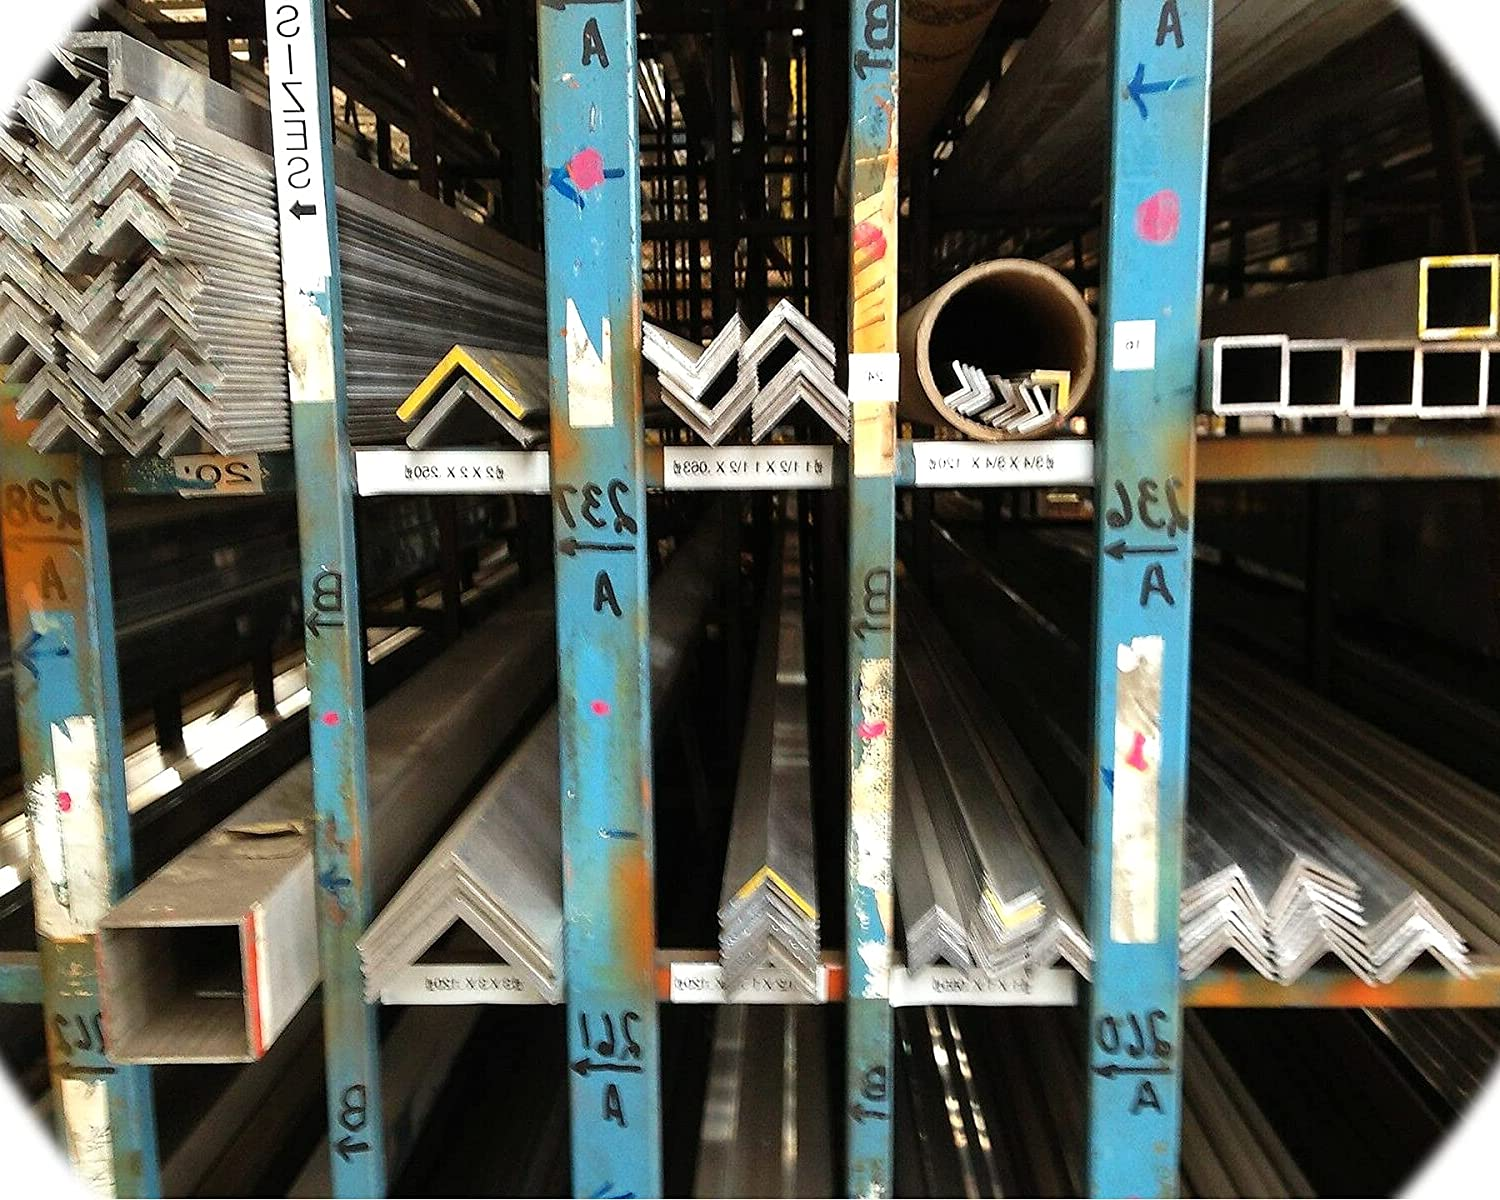 New Metal Alloy 6061 Aluminum Angle product OFFicial site x SH-4 .250